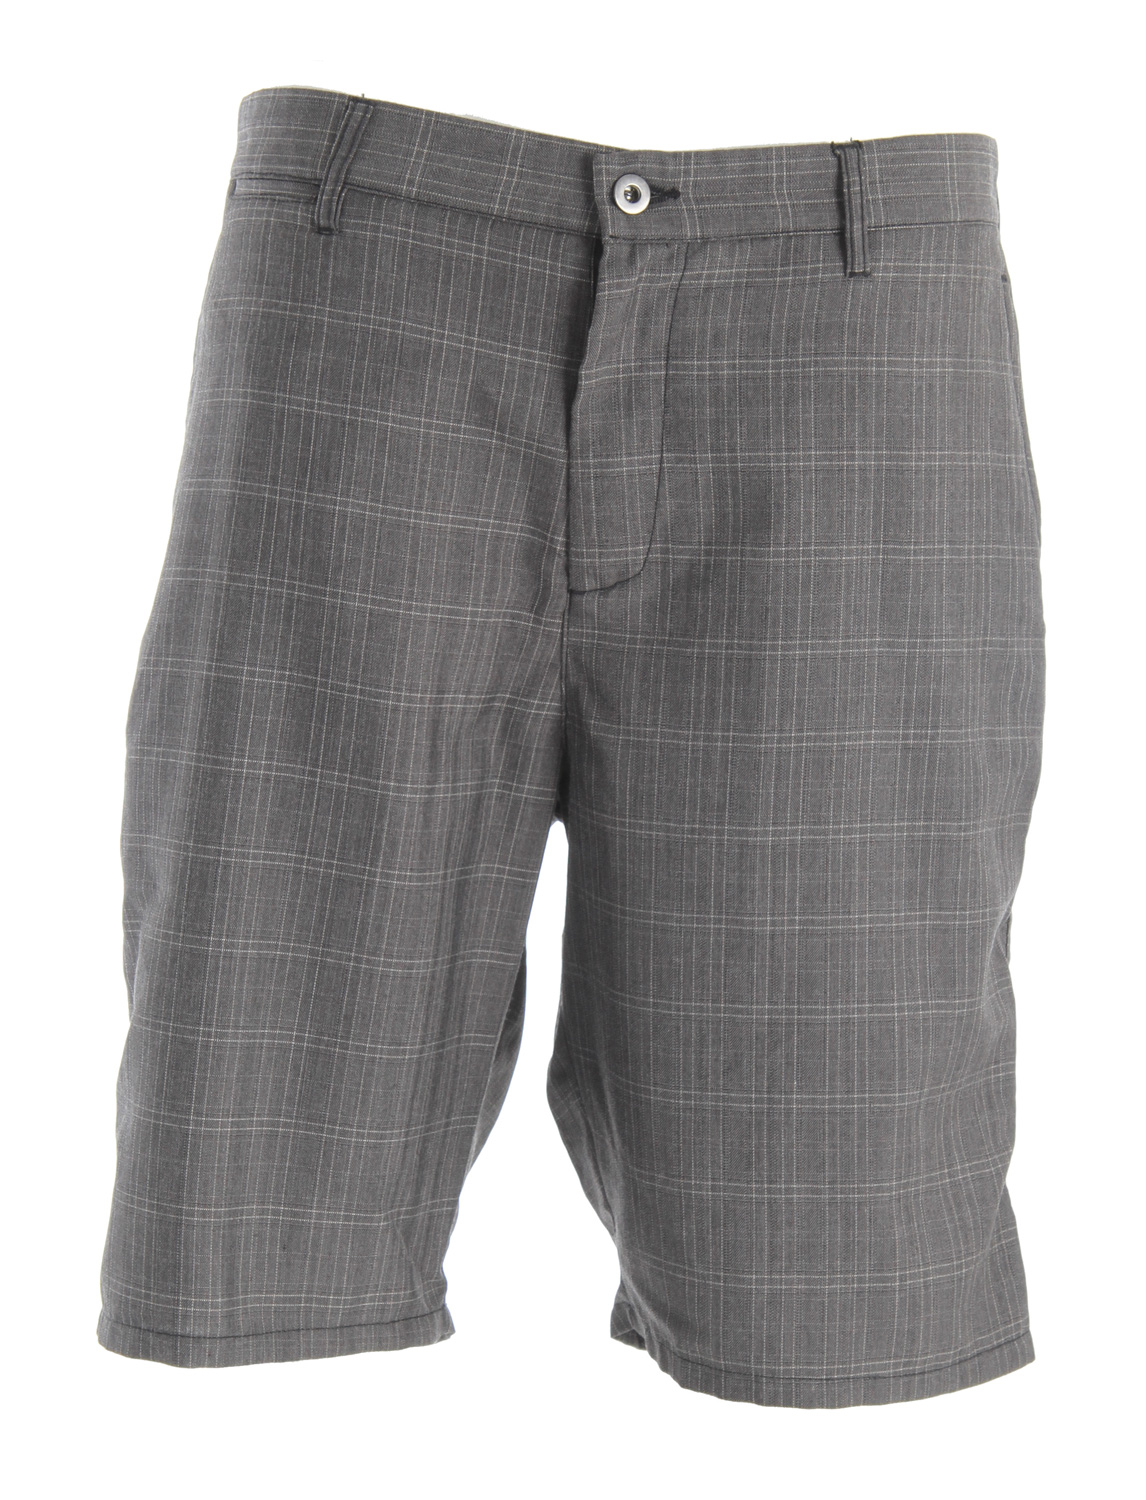 "Skateboard Key Features of the DC Romano Short Shorts: Yarn dye small plaid walkshort with classic chino fit with rear welt pockets and front coin pocketYKK zip flyWoven label trim detail22"" outseam65% polyester/35% rayon - $34.95"